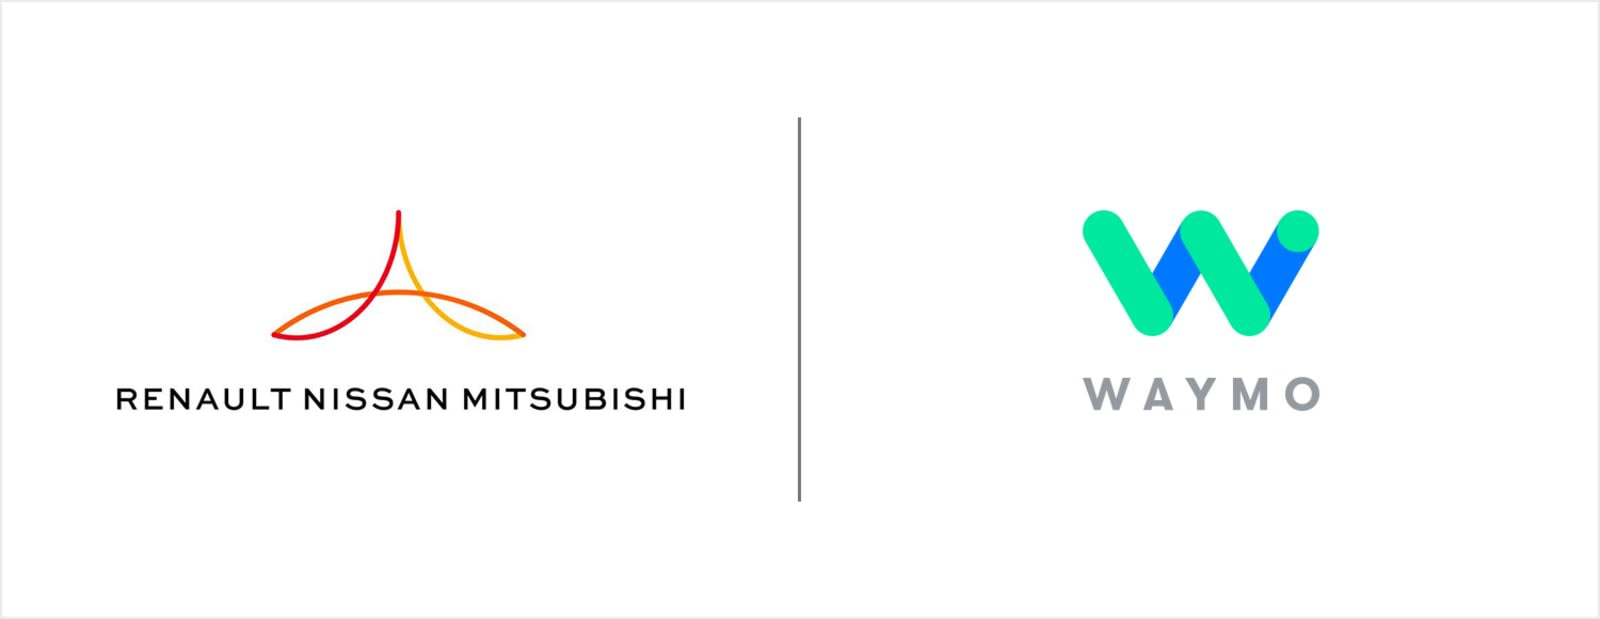 Waymo is developing driverless services with Renault and Nissan